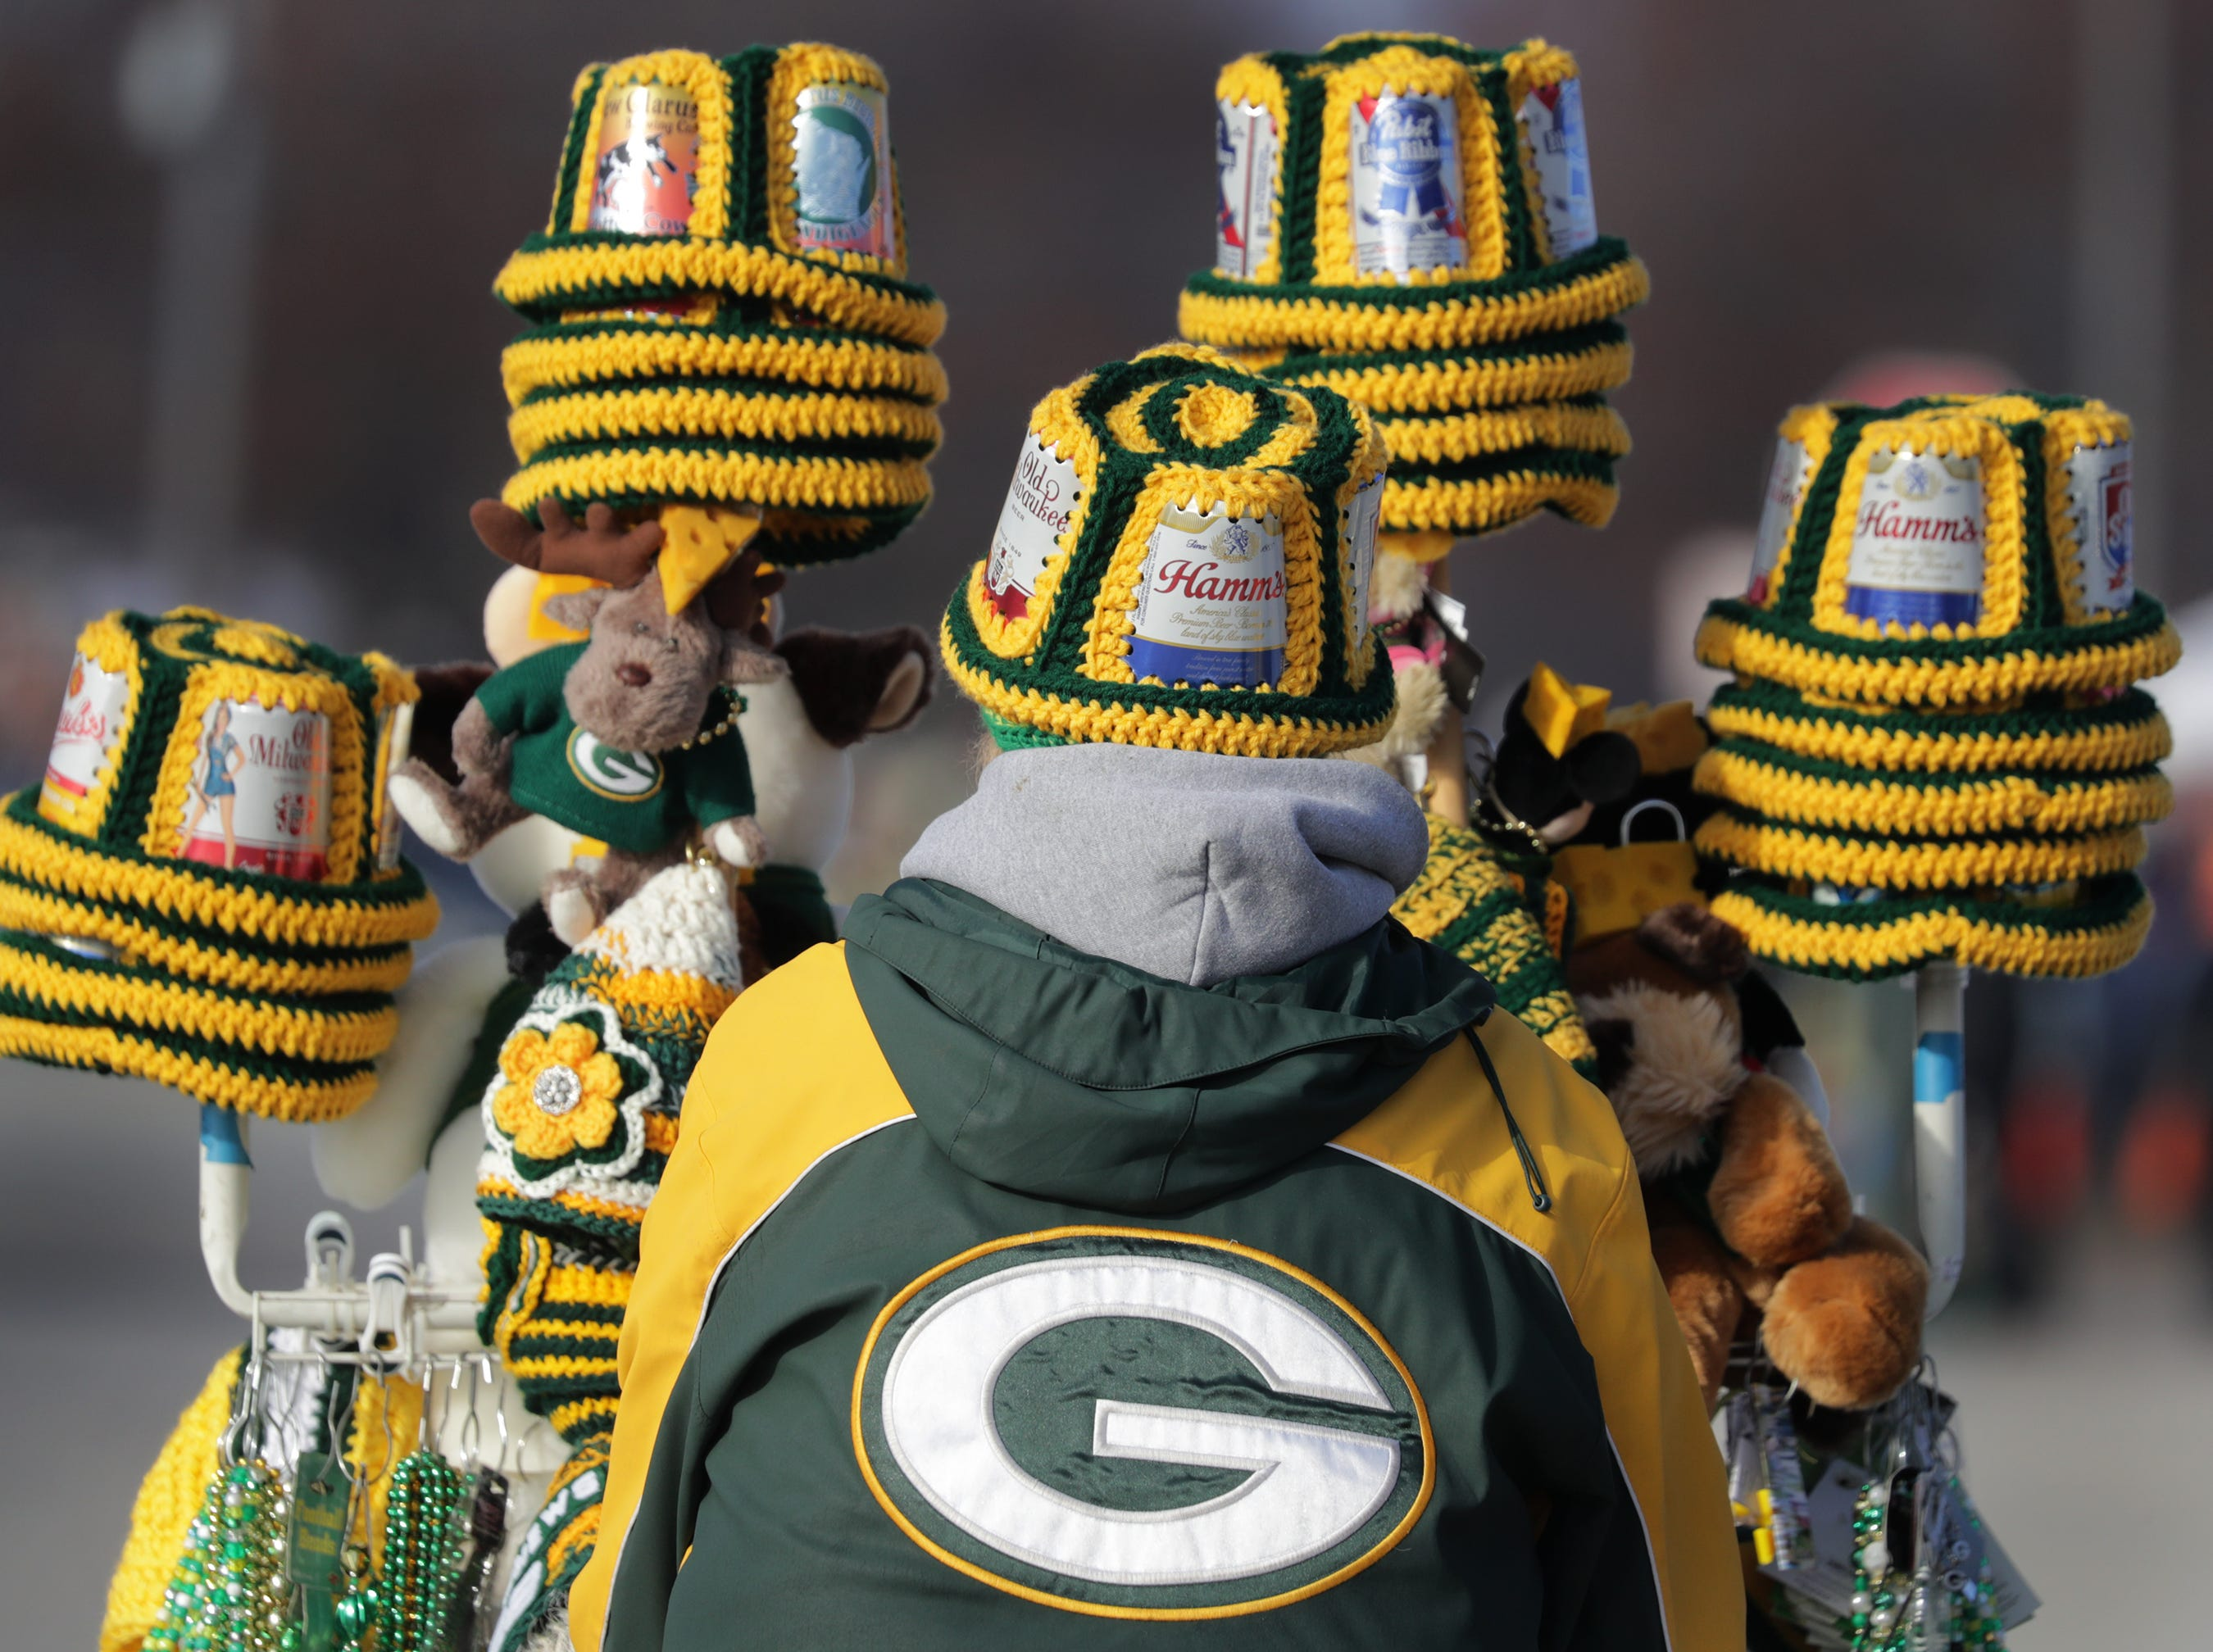 The Green Bay Packers against the Atlanta Falcons during their football game on Sunday, December 9, 2018, at Lambeau Field in Green Bay, Wis.